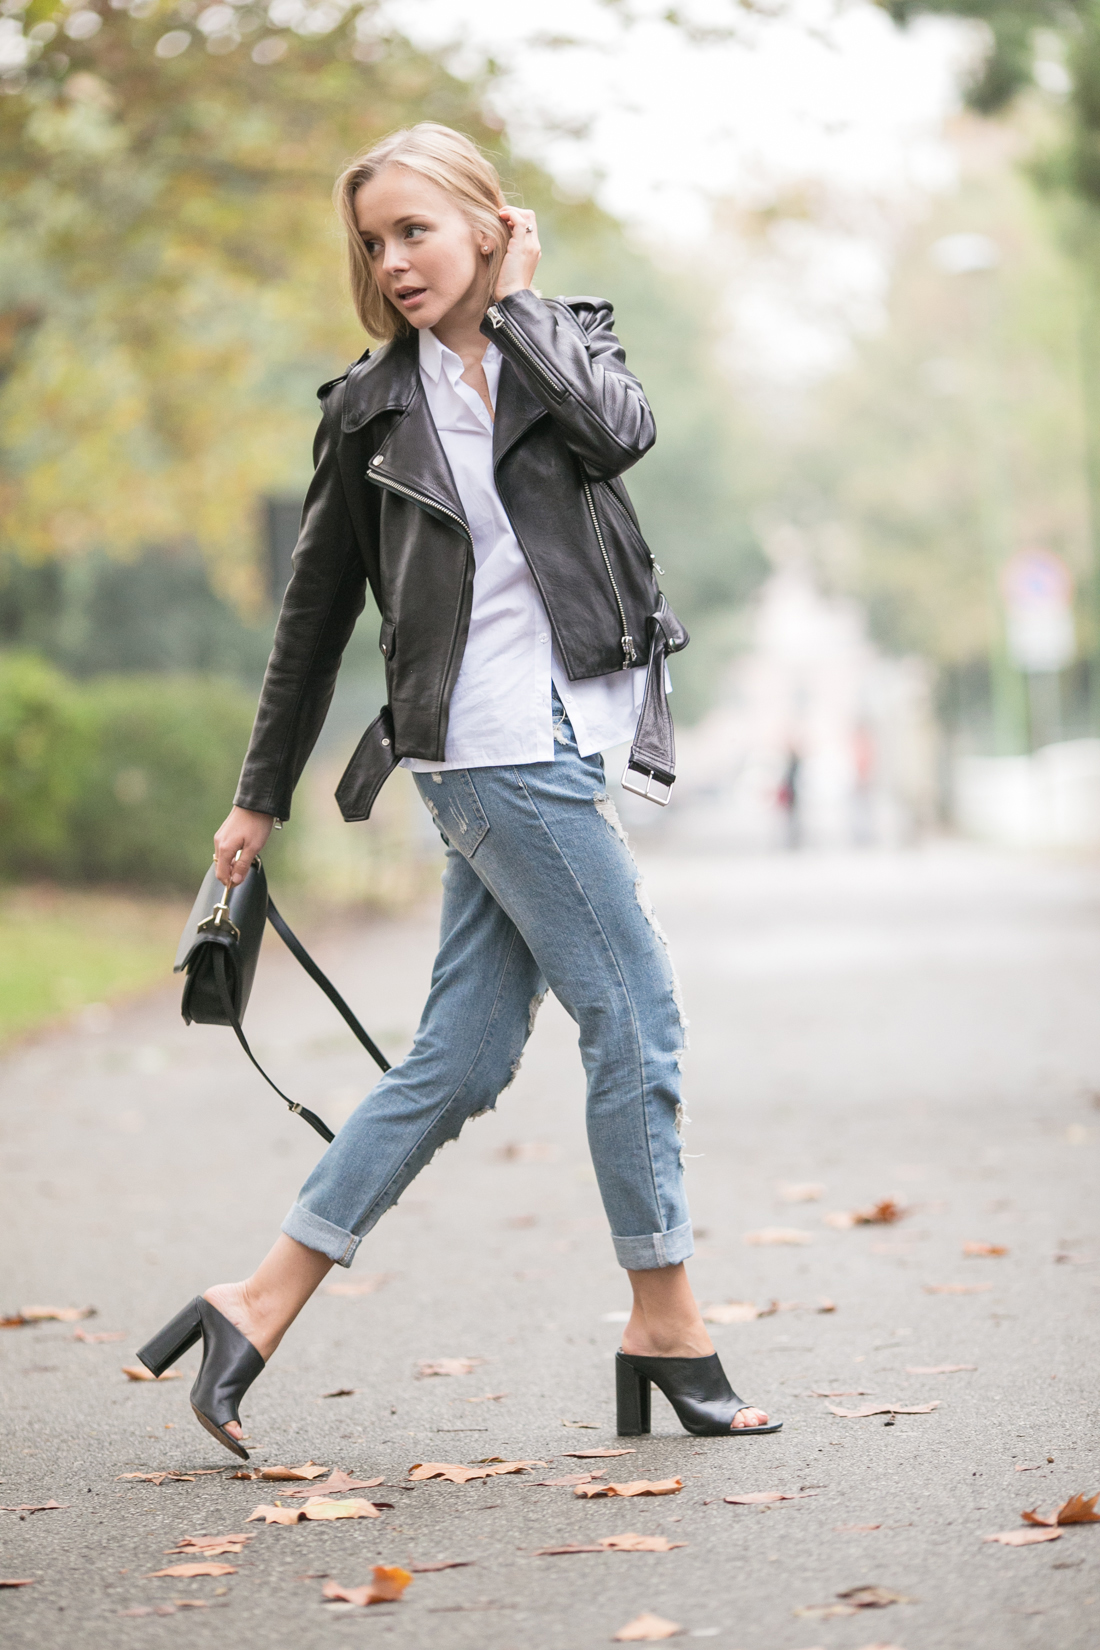 darya kamalova thecablook russian fashion lifestyle blogger in italy outfit spring acne mape leather jacket with boyfriend ripped jeans mules ans m2malletier black bag-24